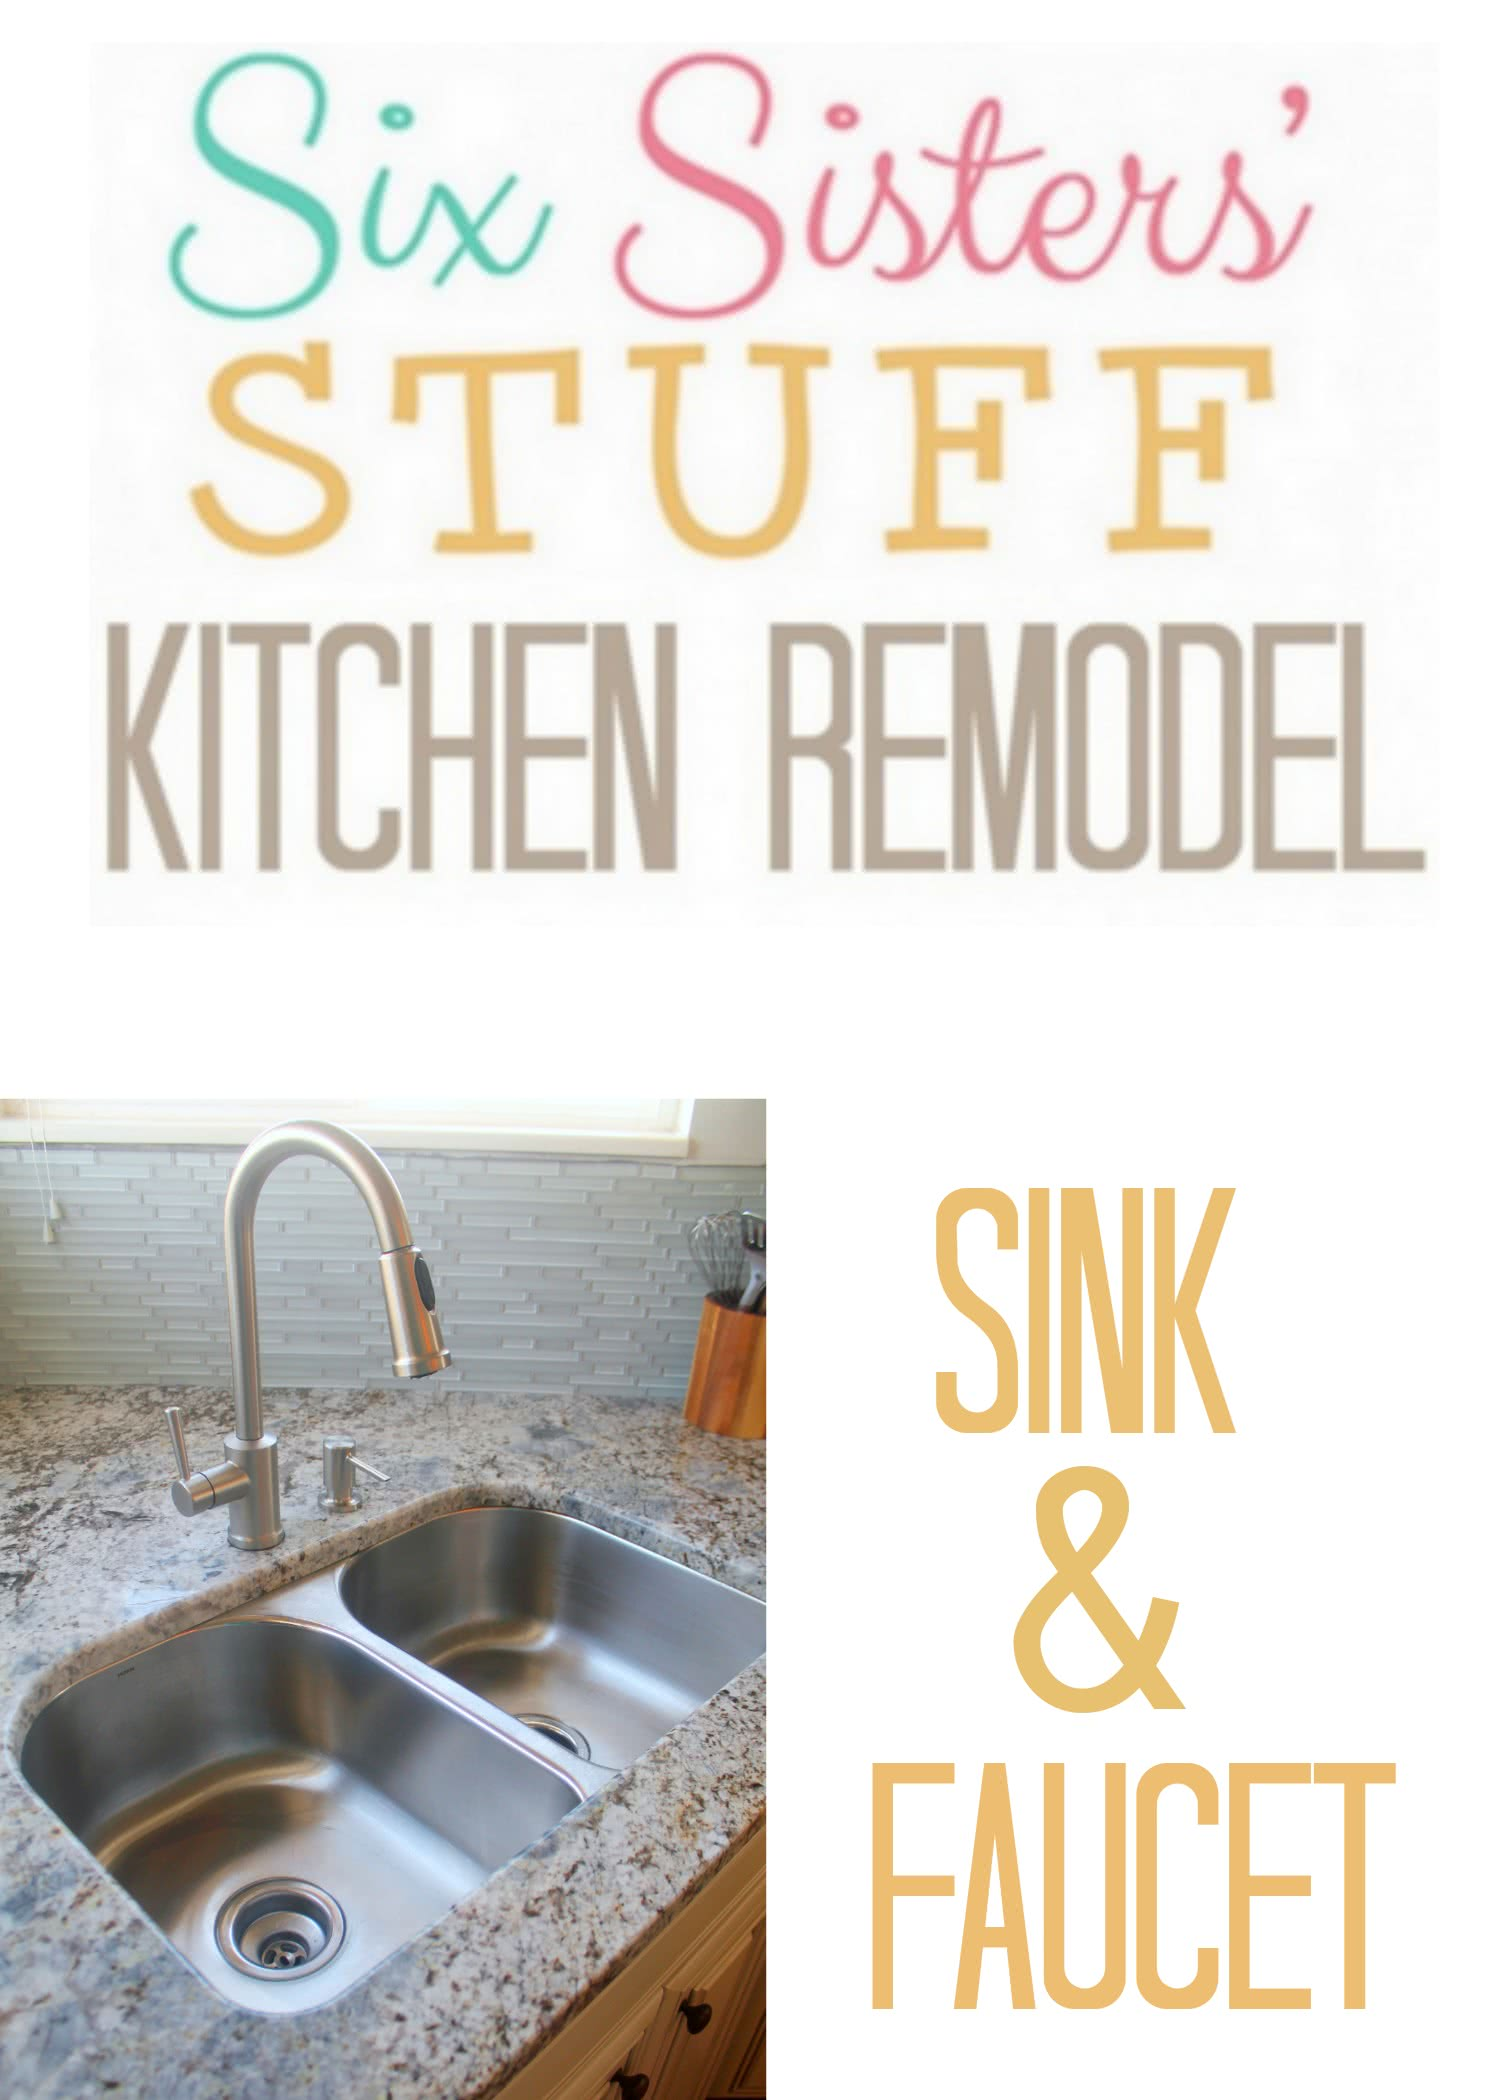 six-sisters-stuff-kitchen-remodel-sink-and-faucet.jpg